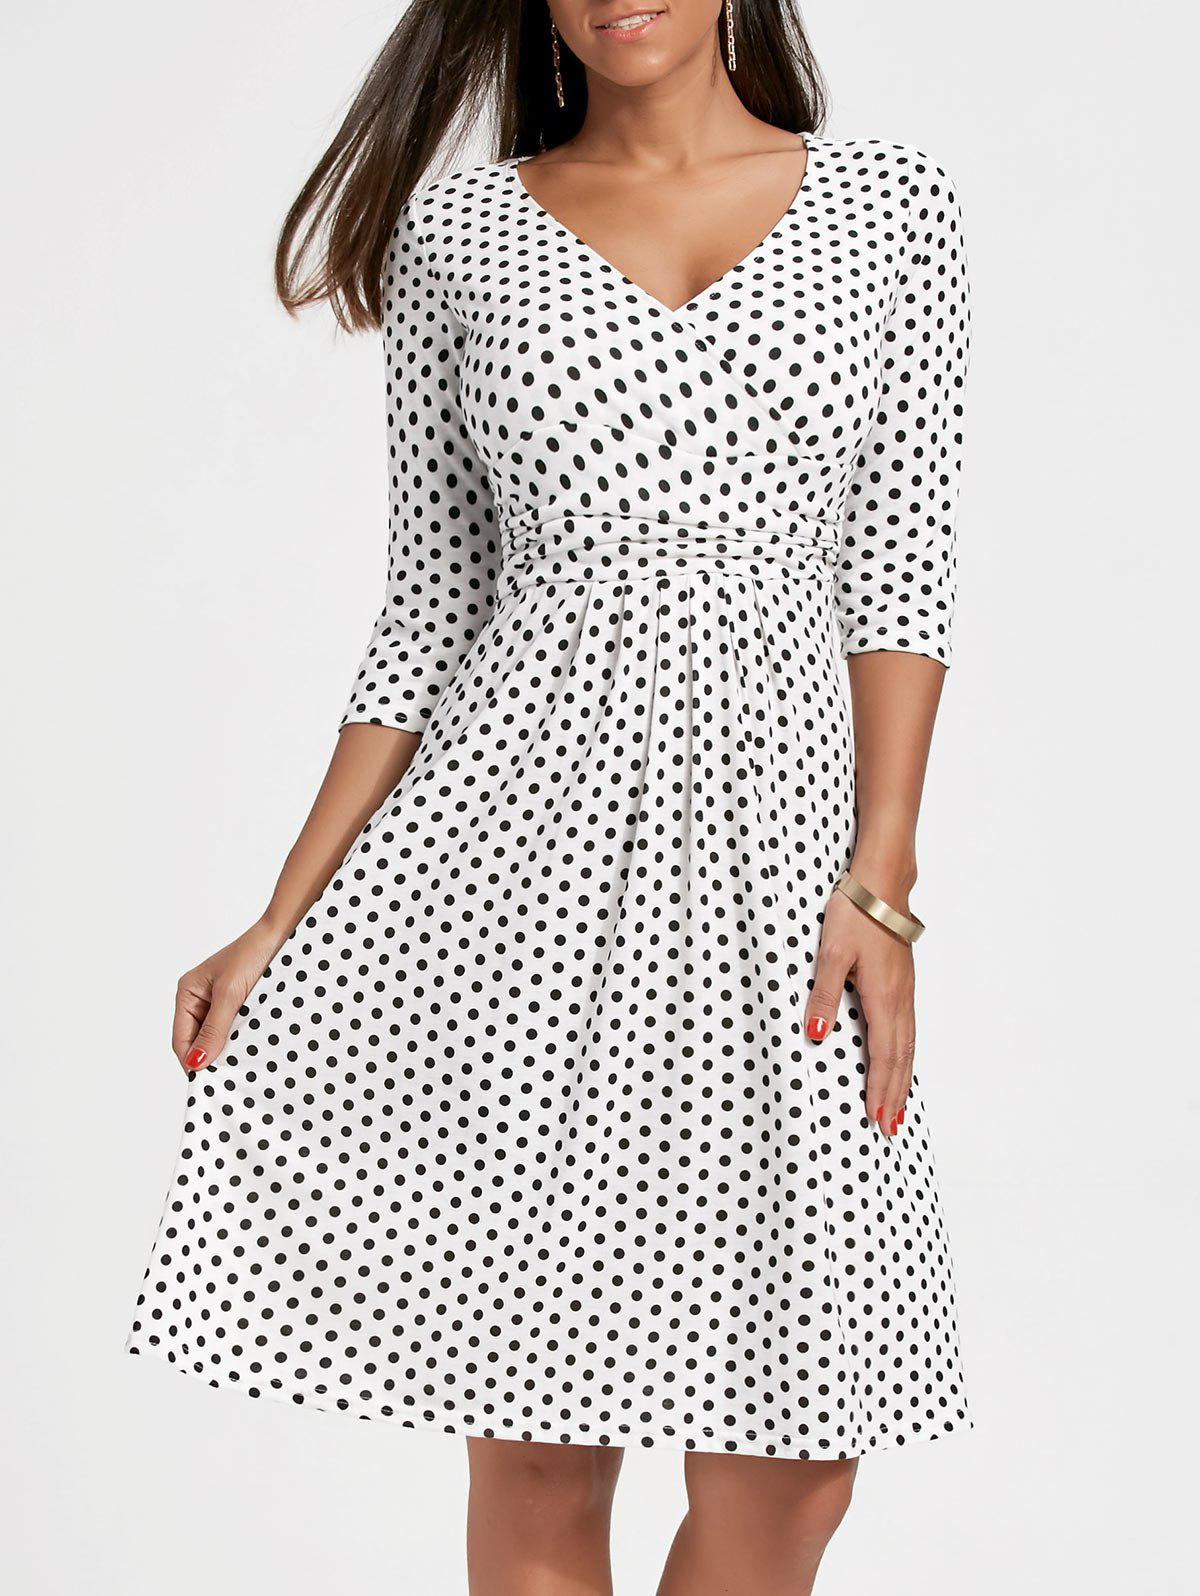 Polka Dot V Neck A Line Dress - WHITE L